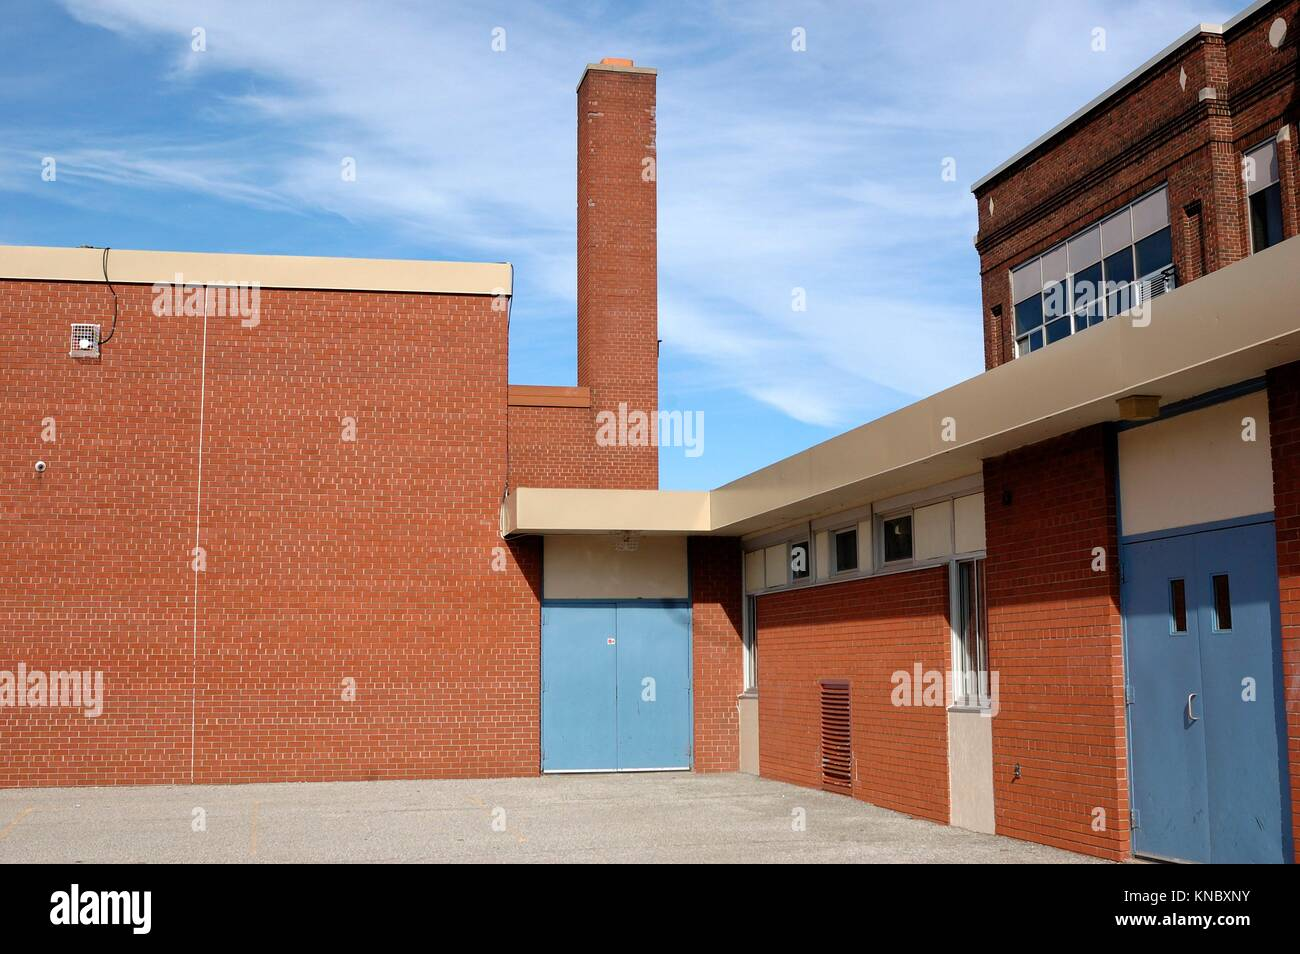 Playground area, smokestack and doors of an inner city Catholic elementary public school after school is out in - Stock Image